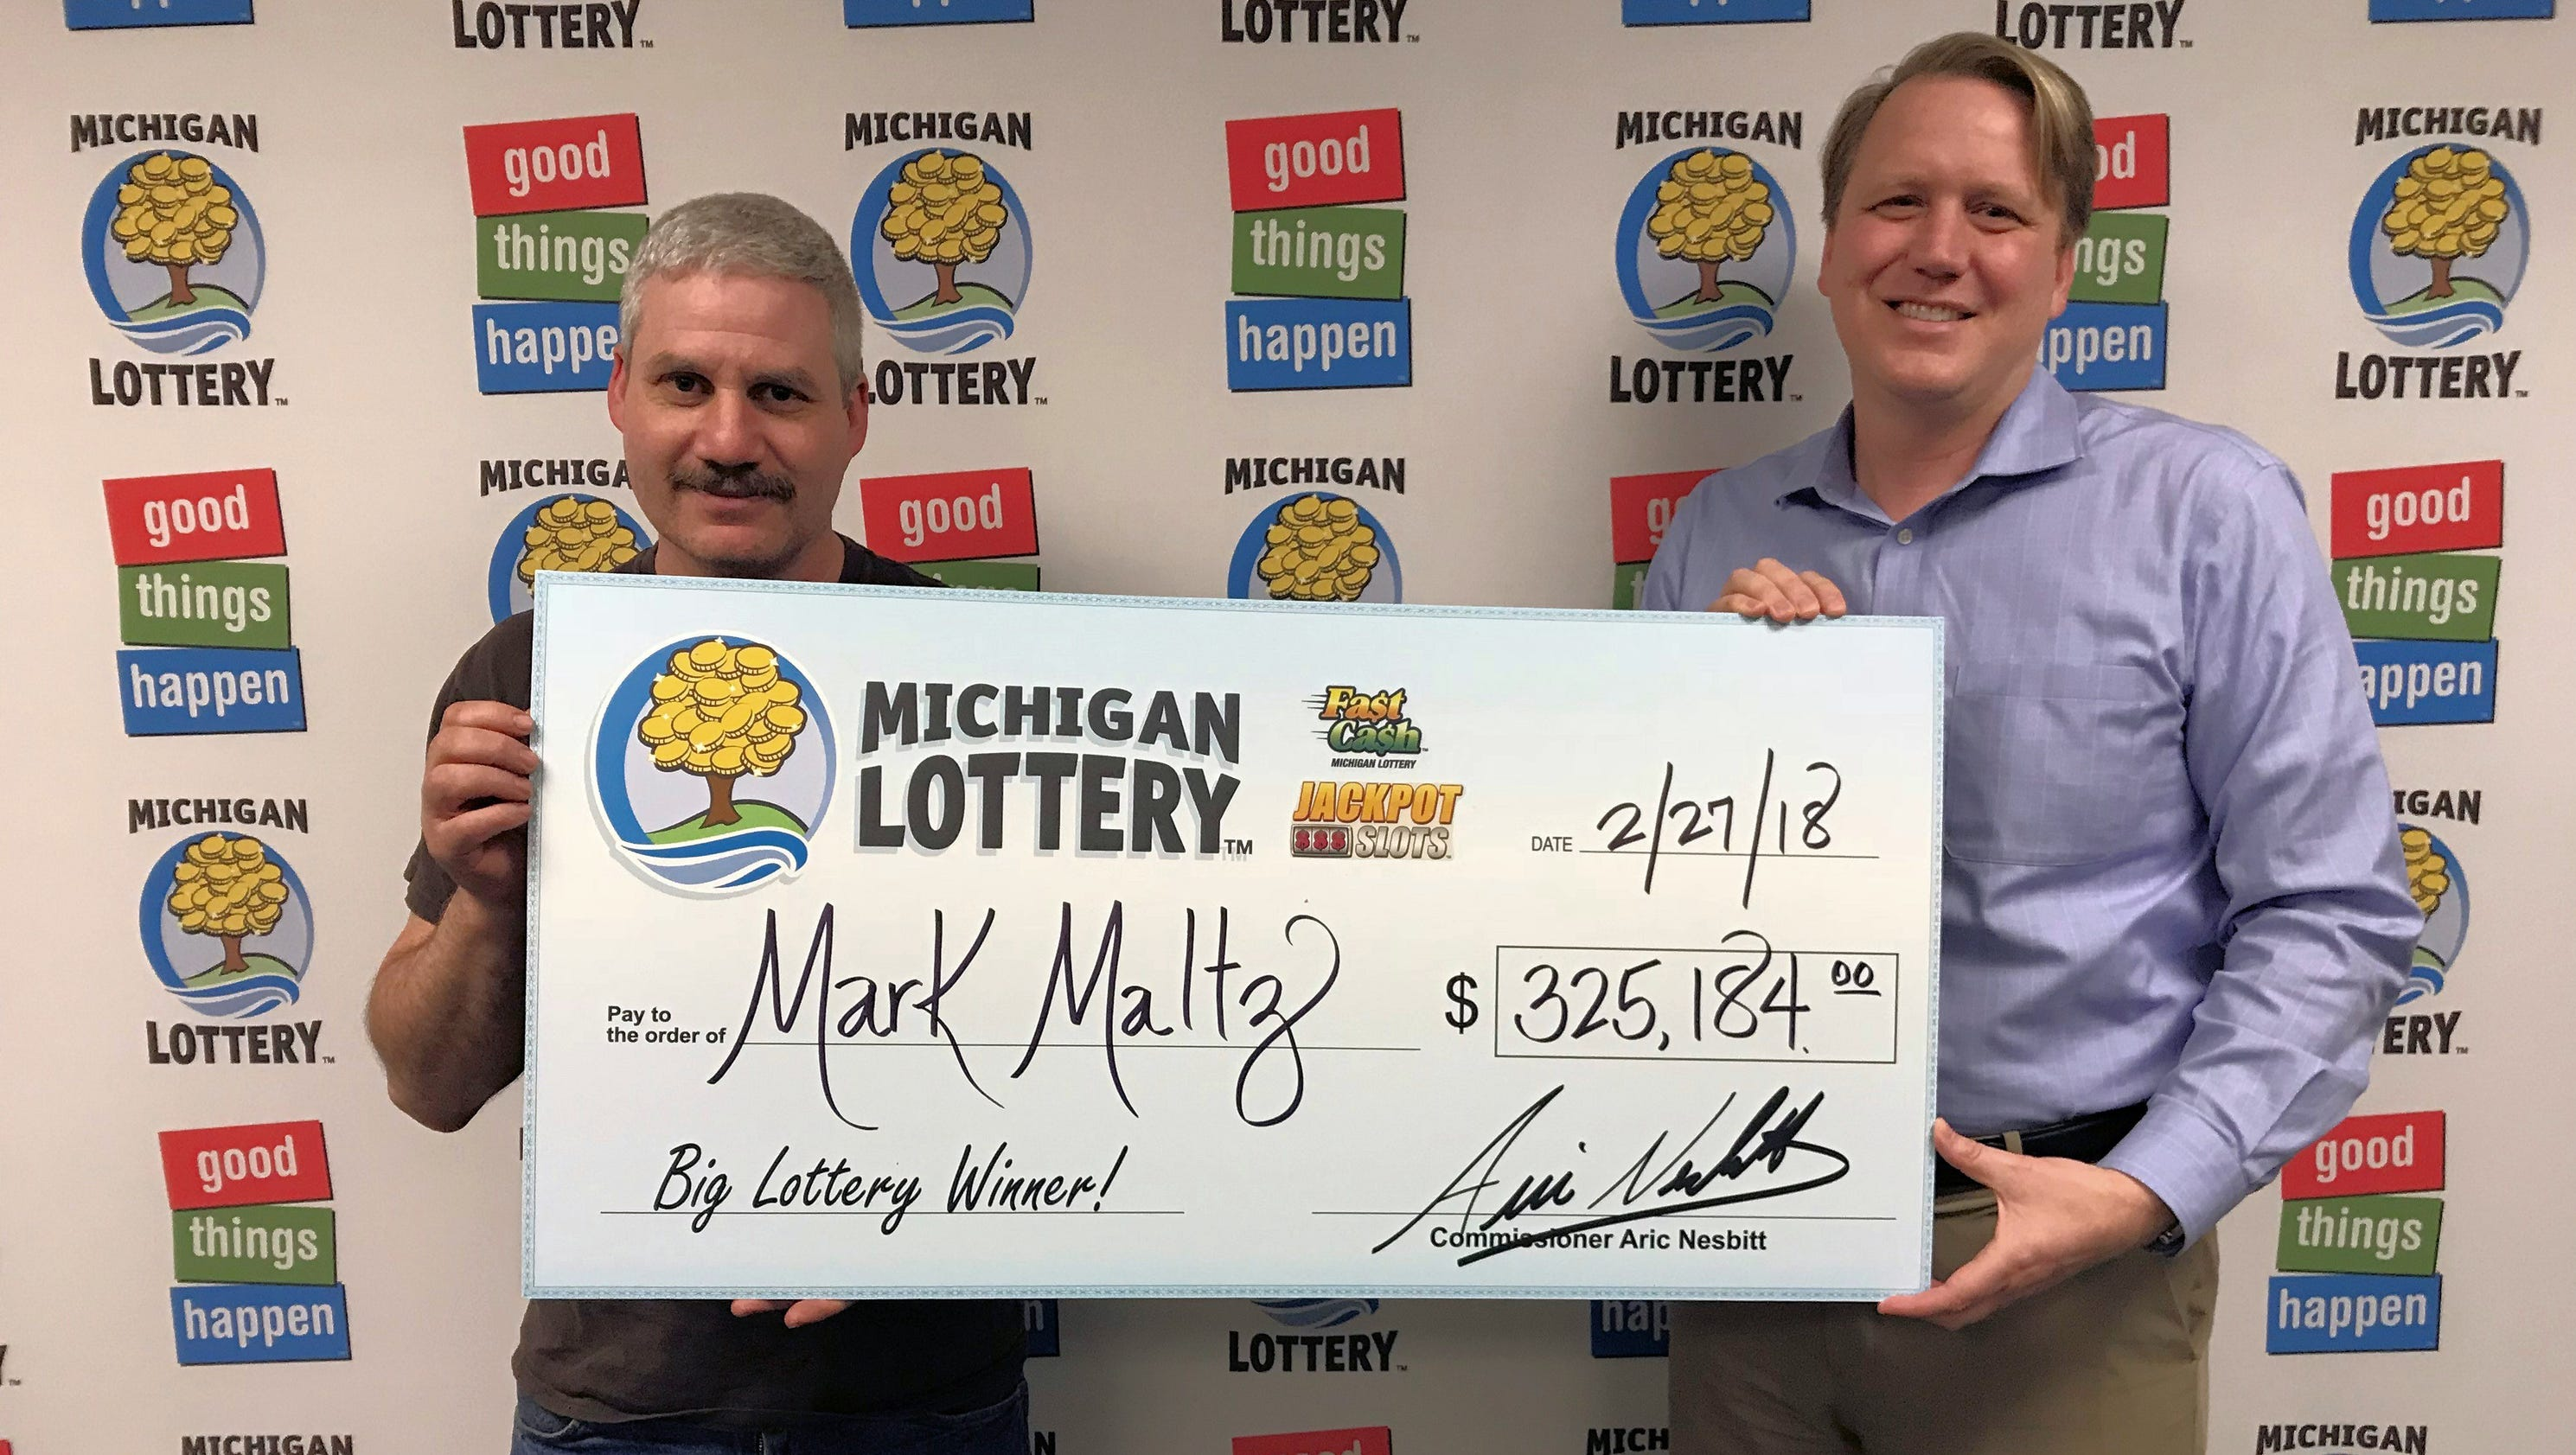 Michigan lottery: Waterford man wins 3 times in 1 day